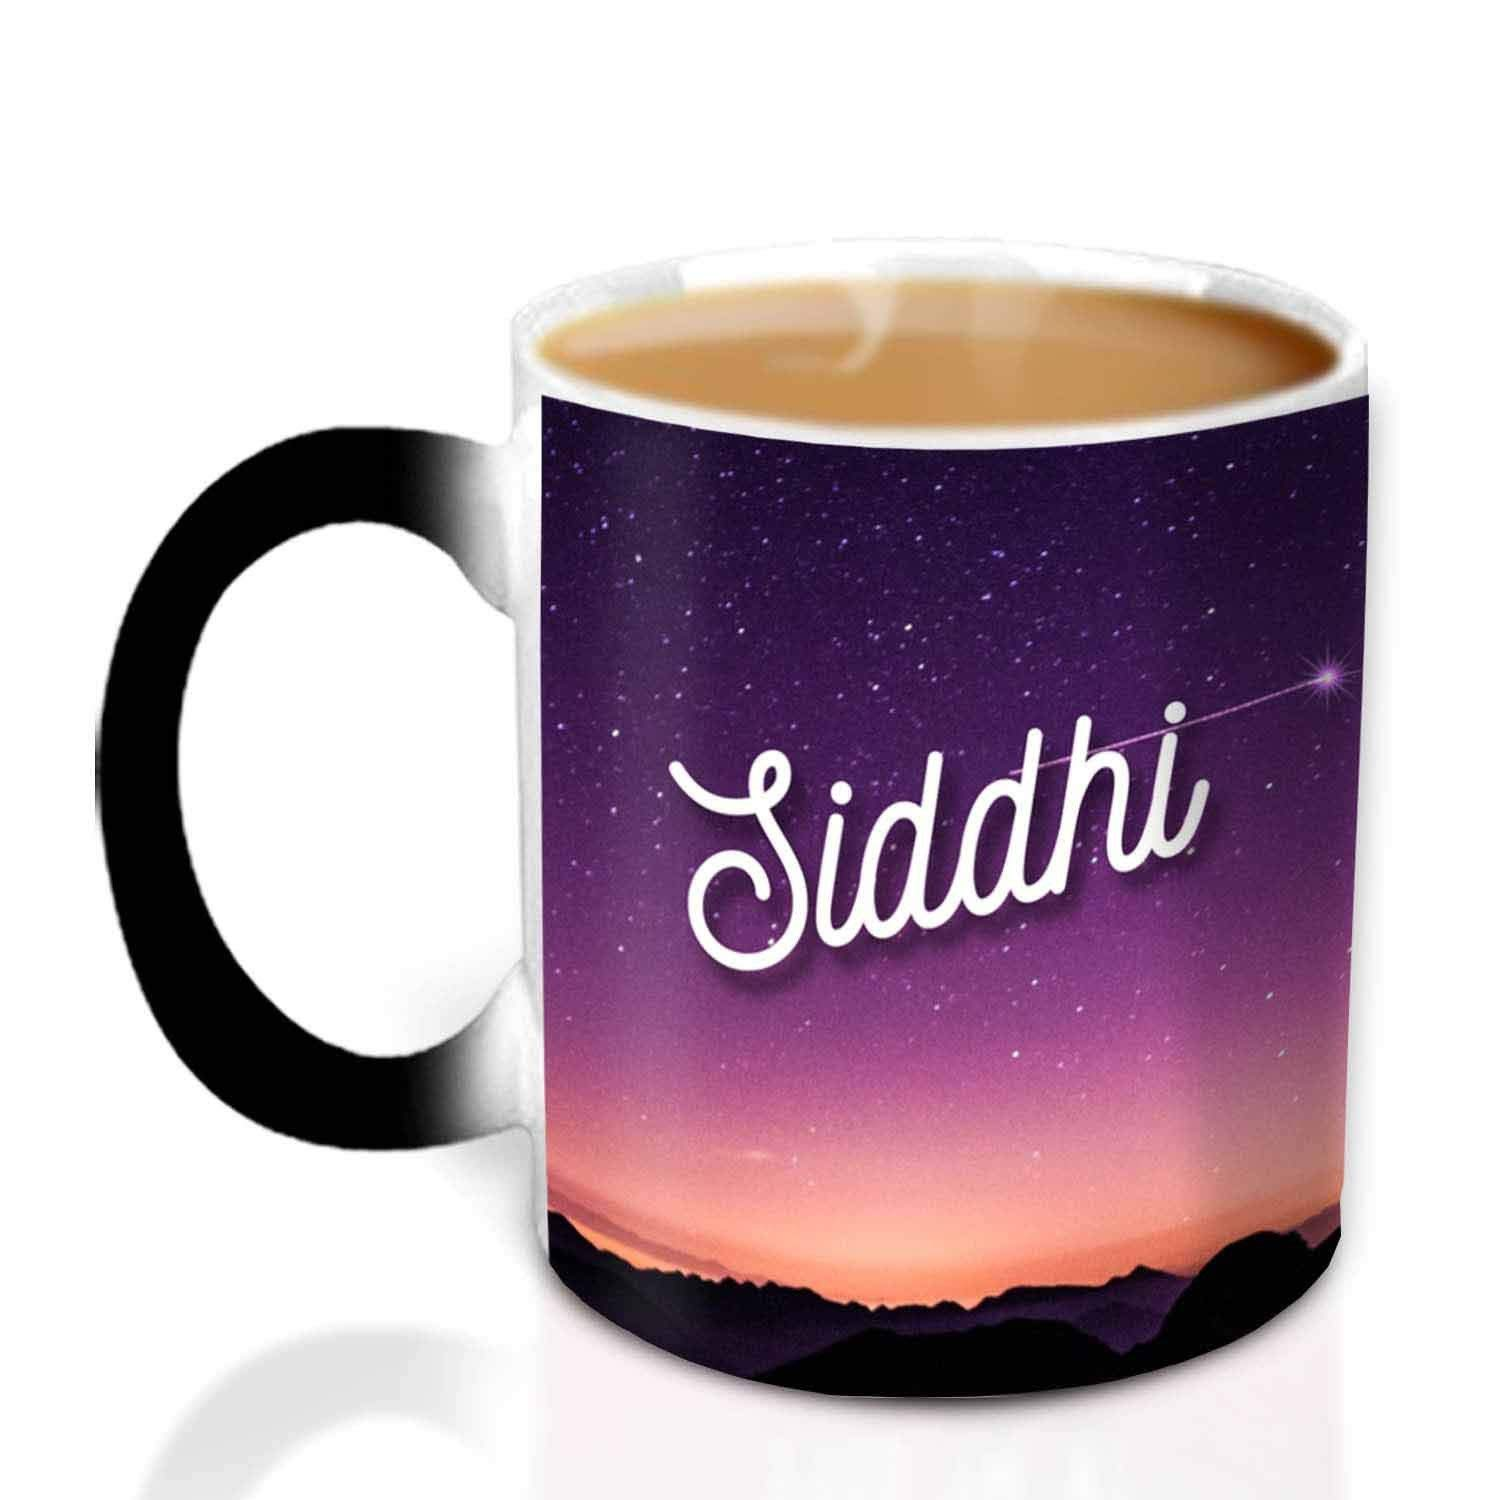 Buy Hot Muggs You Re The Magic Siddhi Magic Mug Personalised Name Ceramic 315ml 1 Unit Valentine Gift Online At Low Prices In India Amazon In Share to twitter share to facebook share to pinterest. buy hot muggs you re the magic siddhi